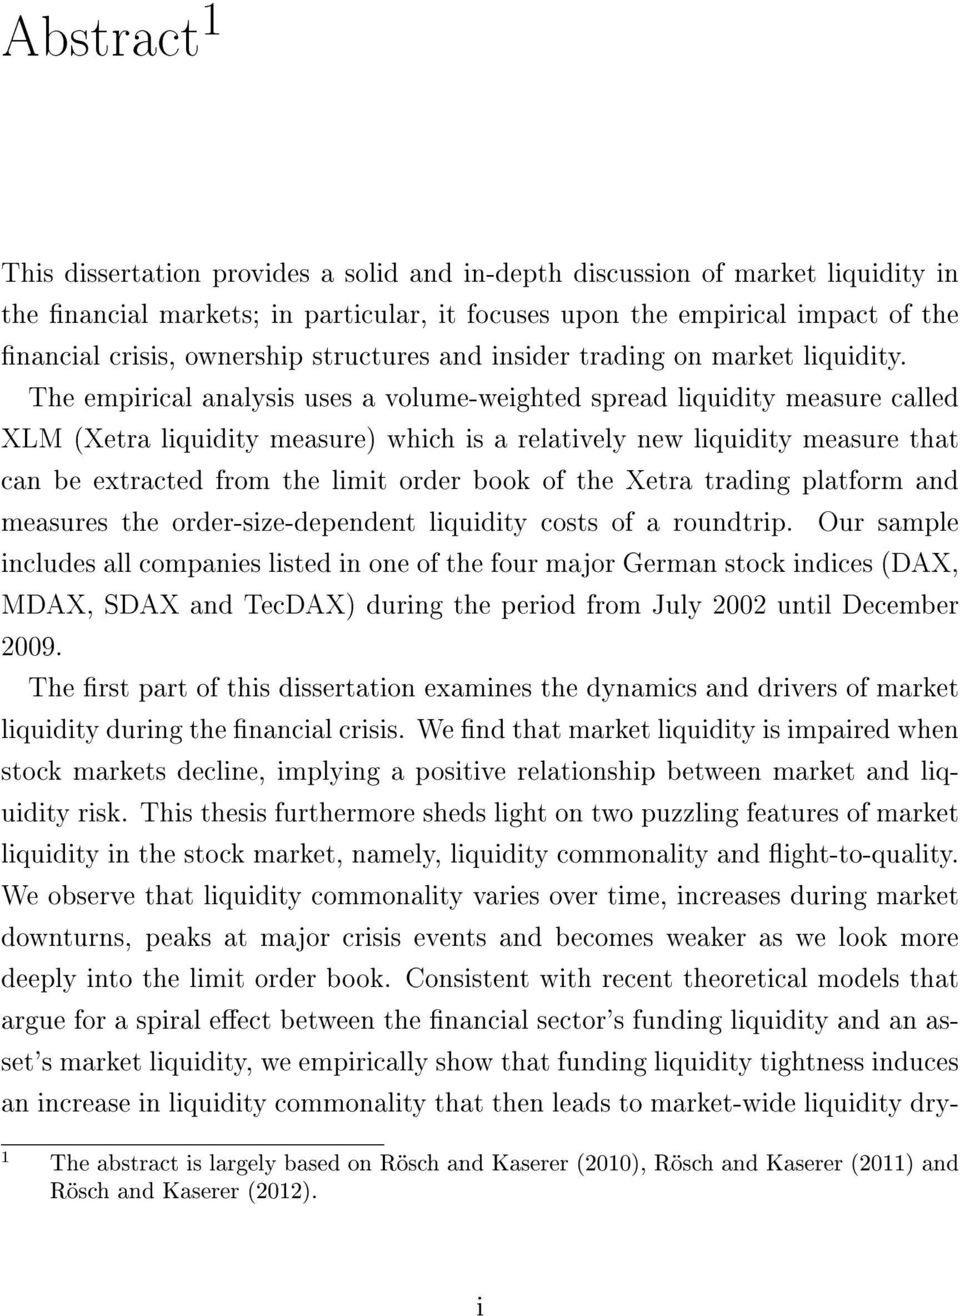 The empirical analysis uses a volume-weighted spread liquidity measure called XLM (Xetra liquidity measure) which is a relatively new liquidity measure that can be extracted from the limit order book